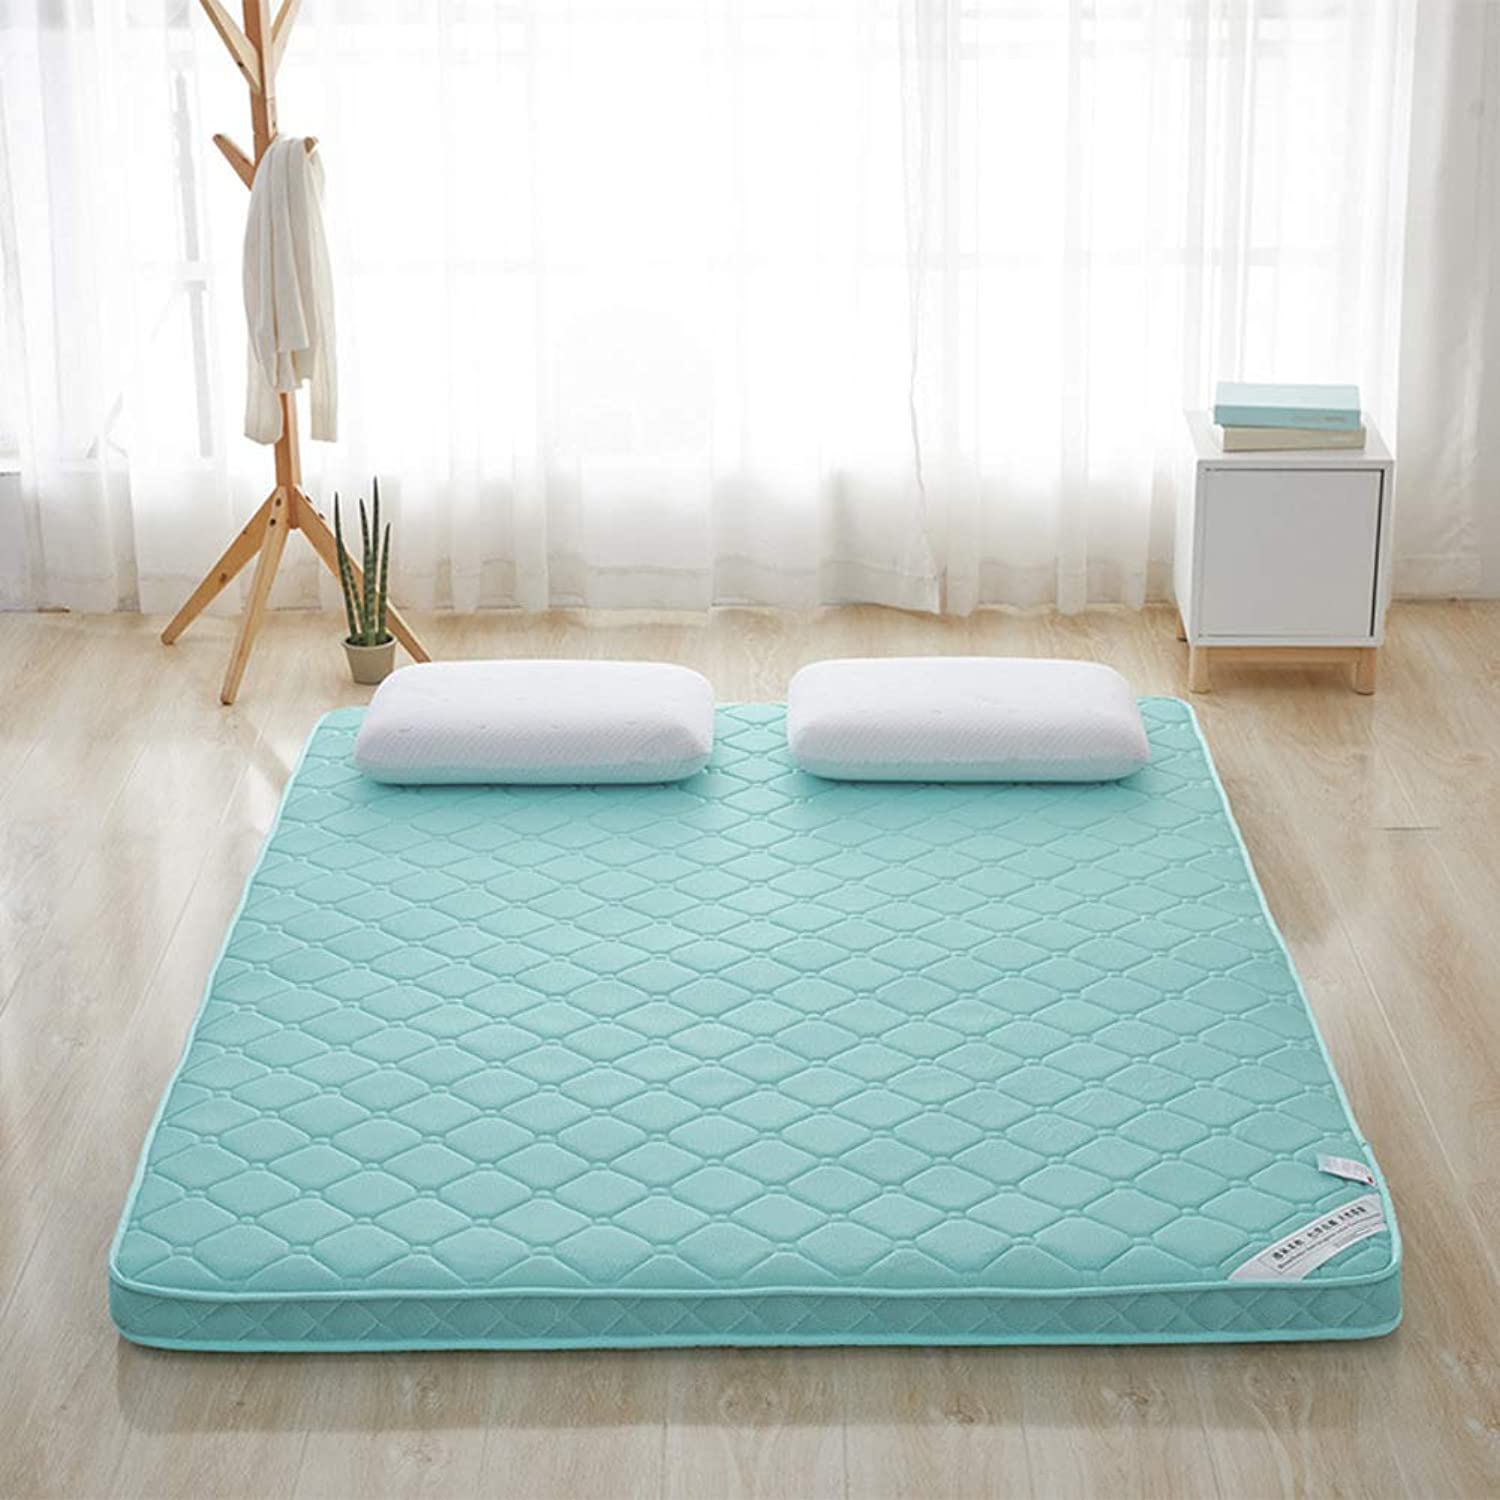 Breathable Futon Mattress, Bamboo Charcoal 4 d Mattress pad, Bedding Stereo Cotton Padded Tatami Mattress Topper Futon Mattress Mat-A 90x200x6cm